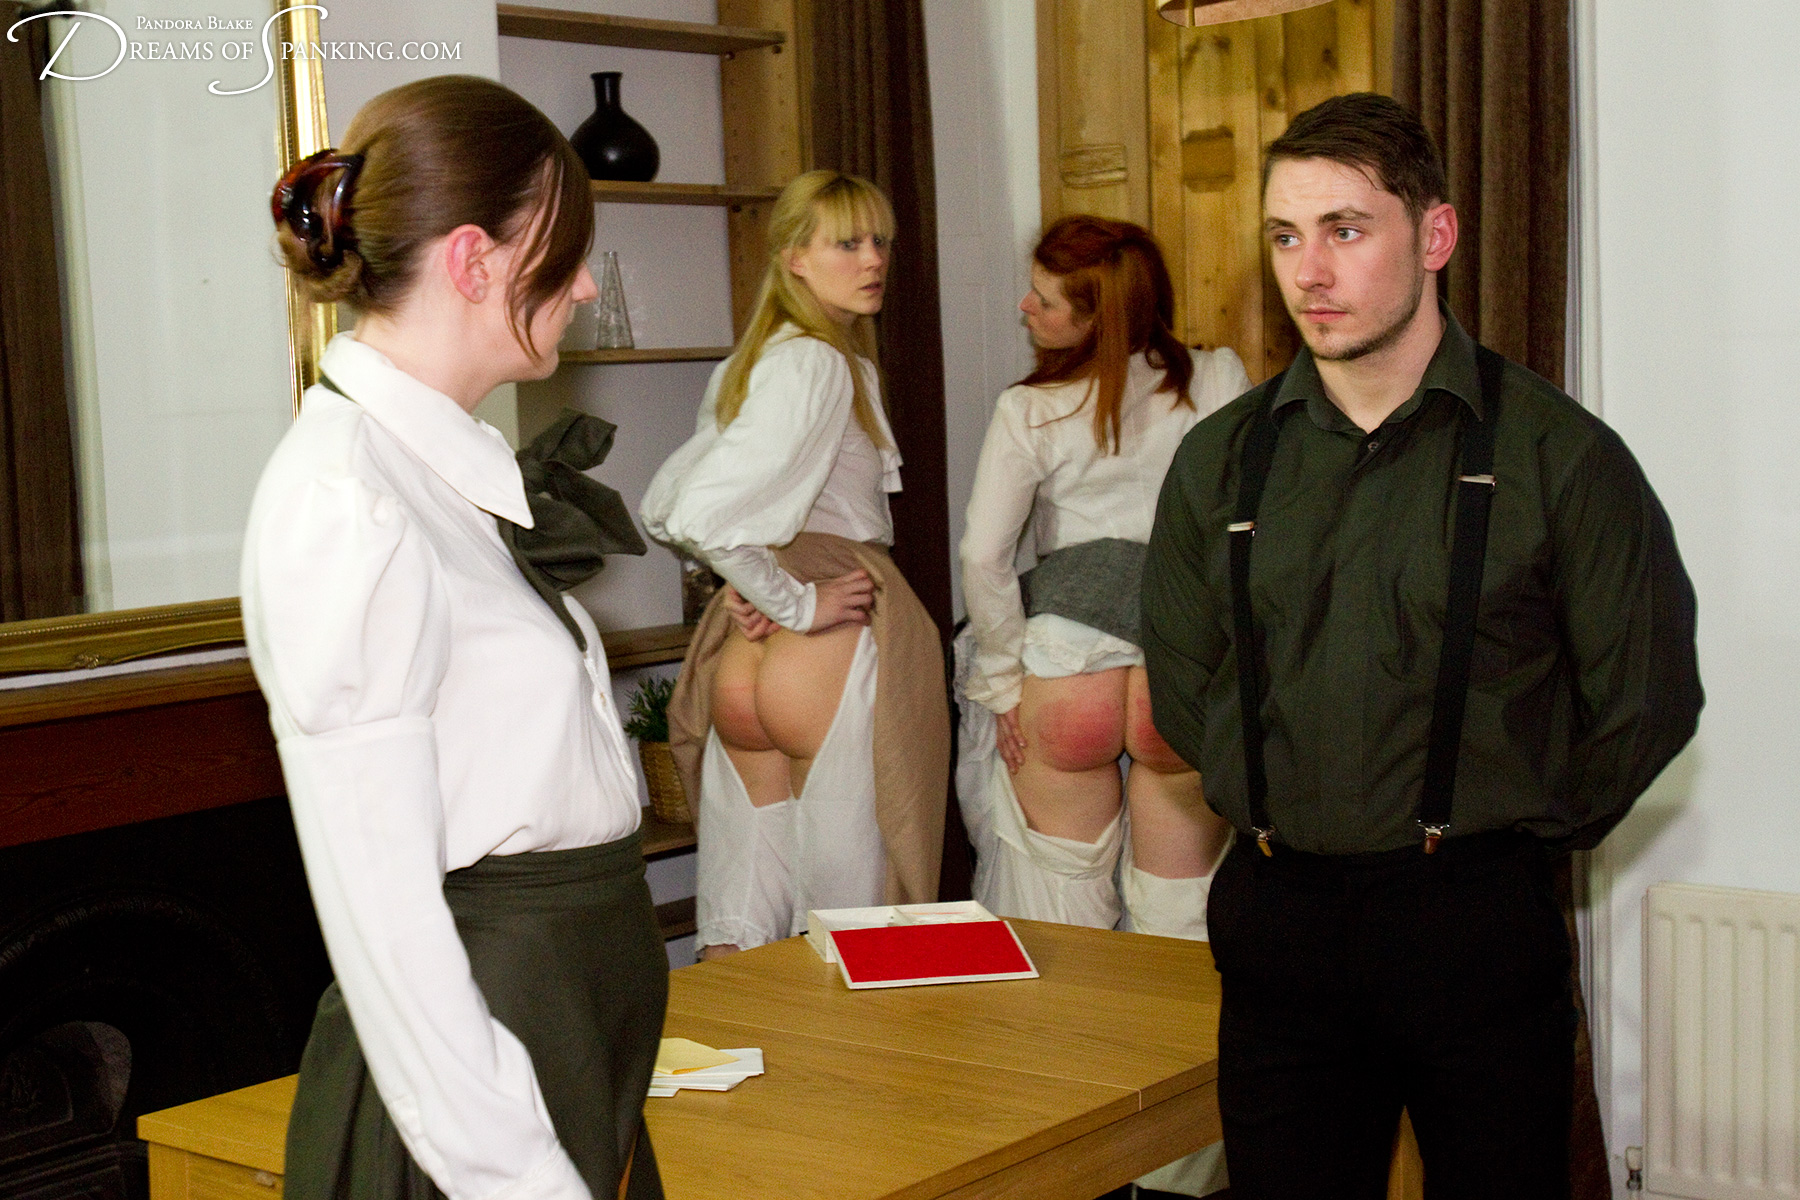 Caned by the Edwardian governess at Dreams of Spanking